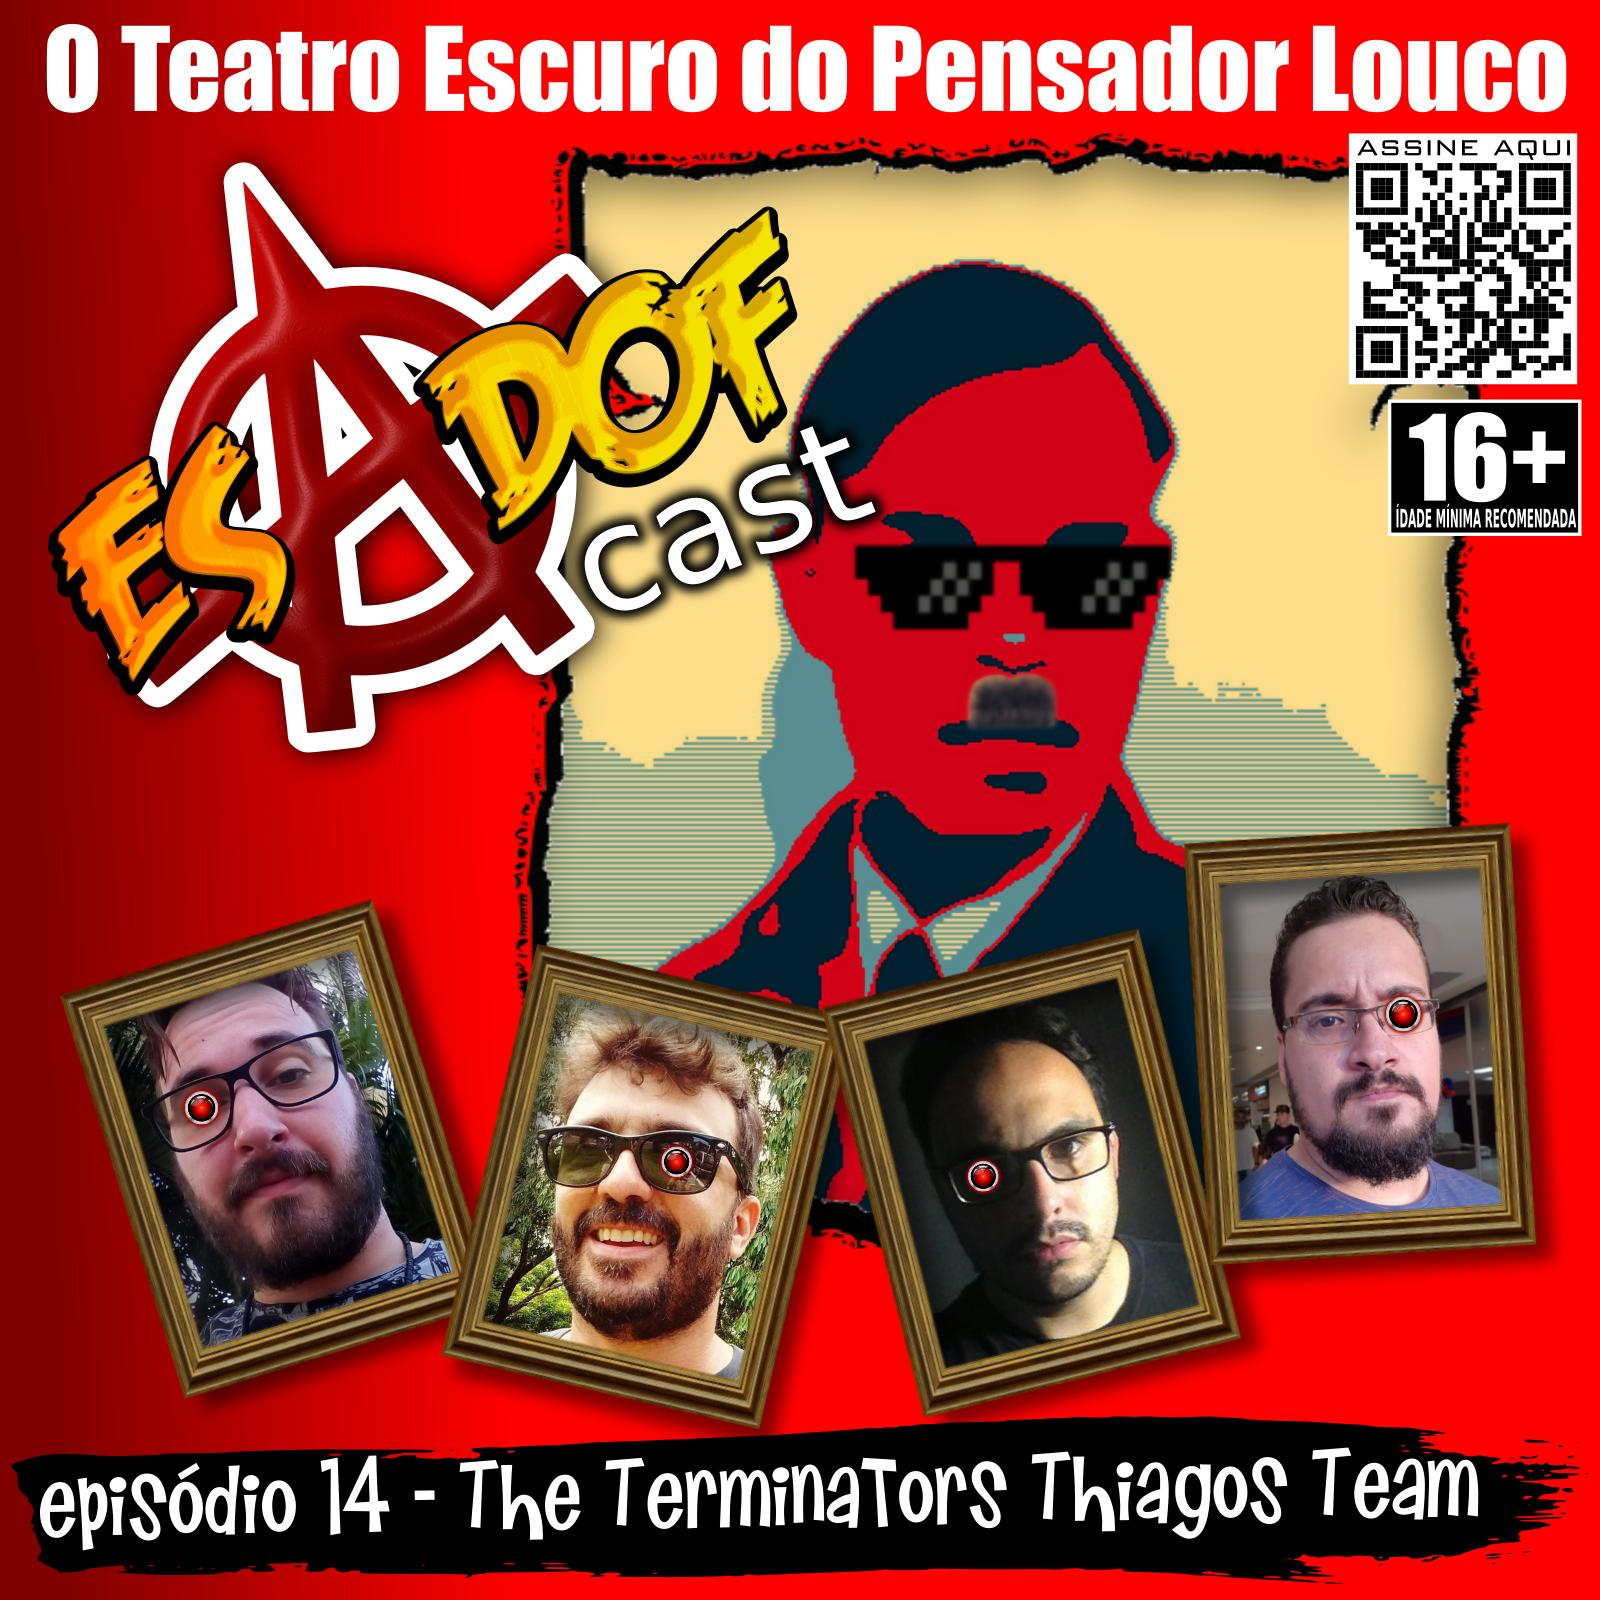 Esadof 14 - The Terminators Thiagos Team